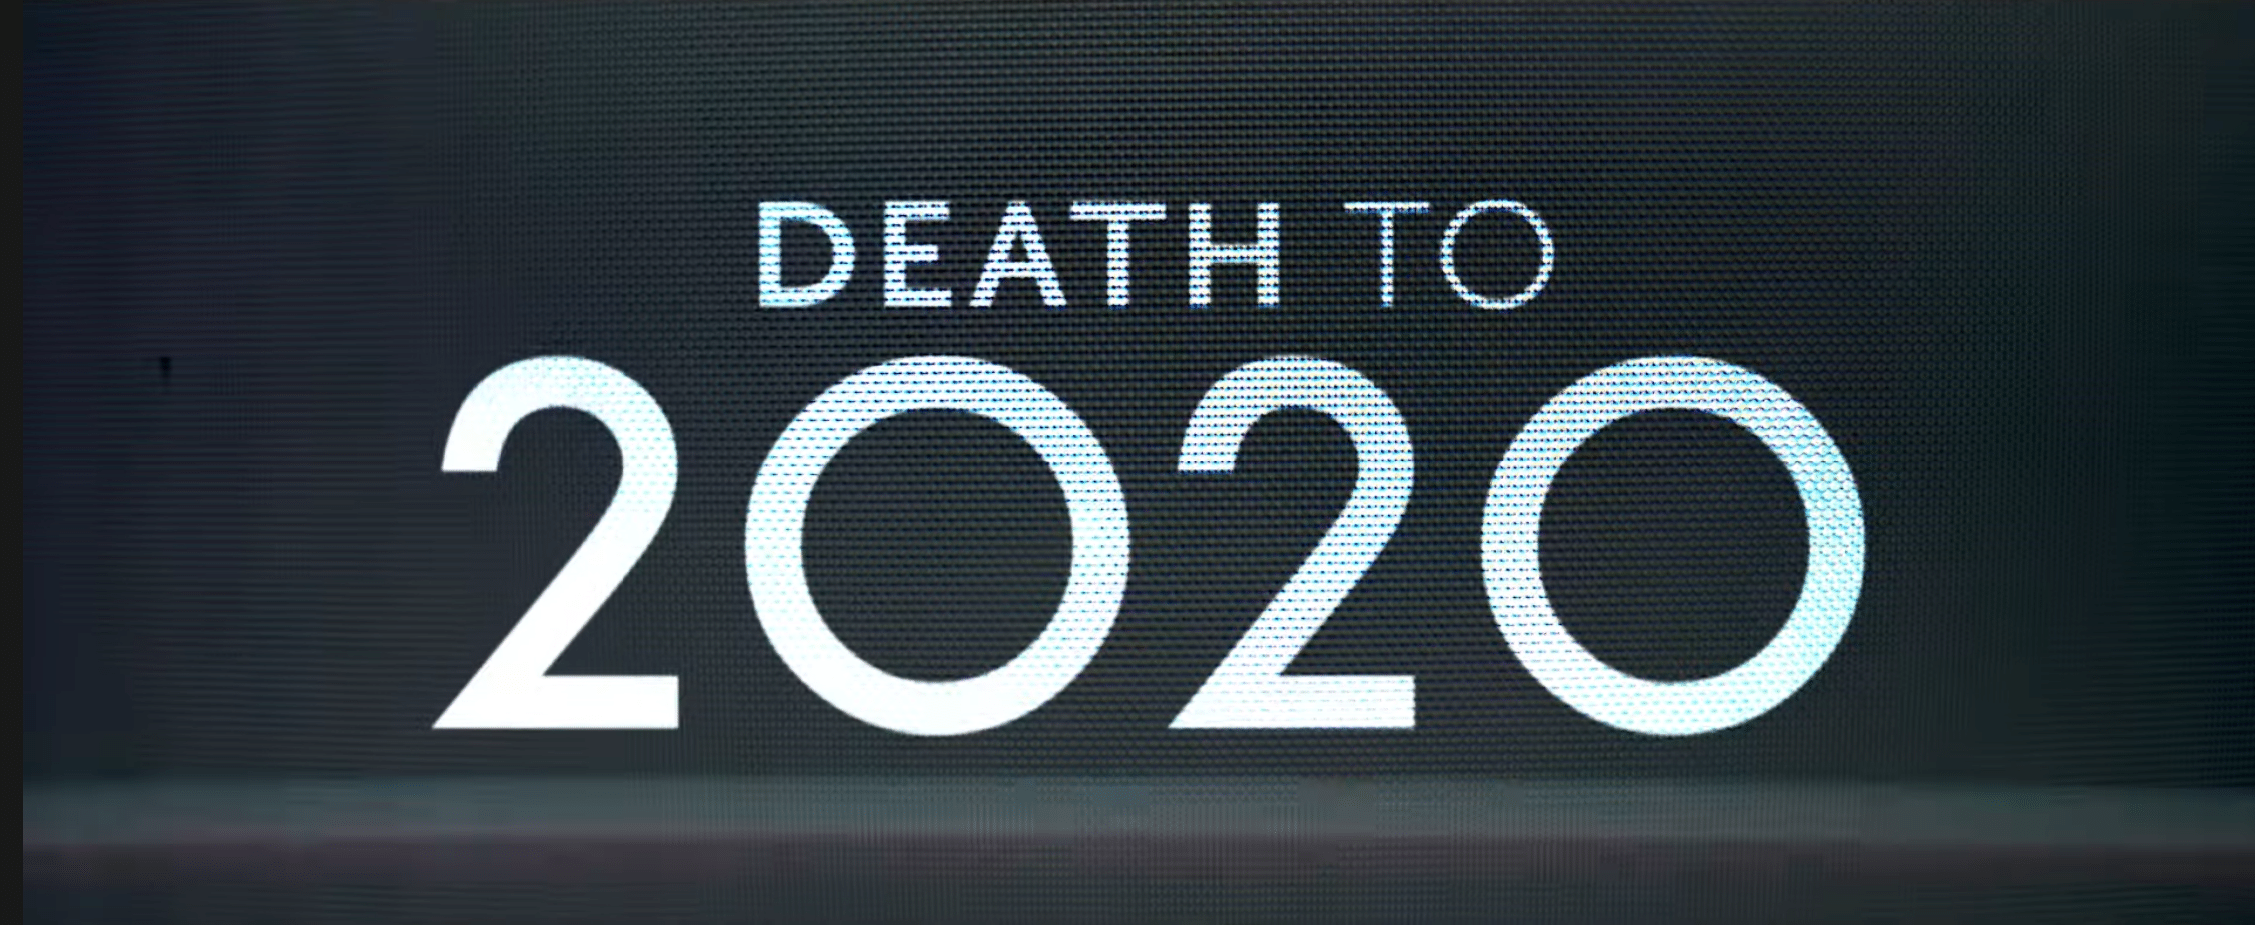 Netflix Roasts The Past Year In 'Death To 2020' (Trailer)